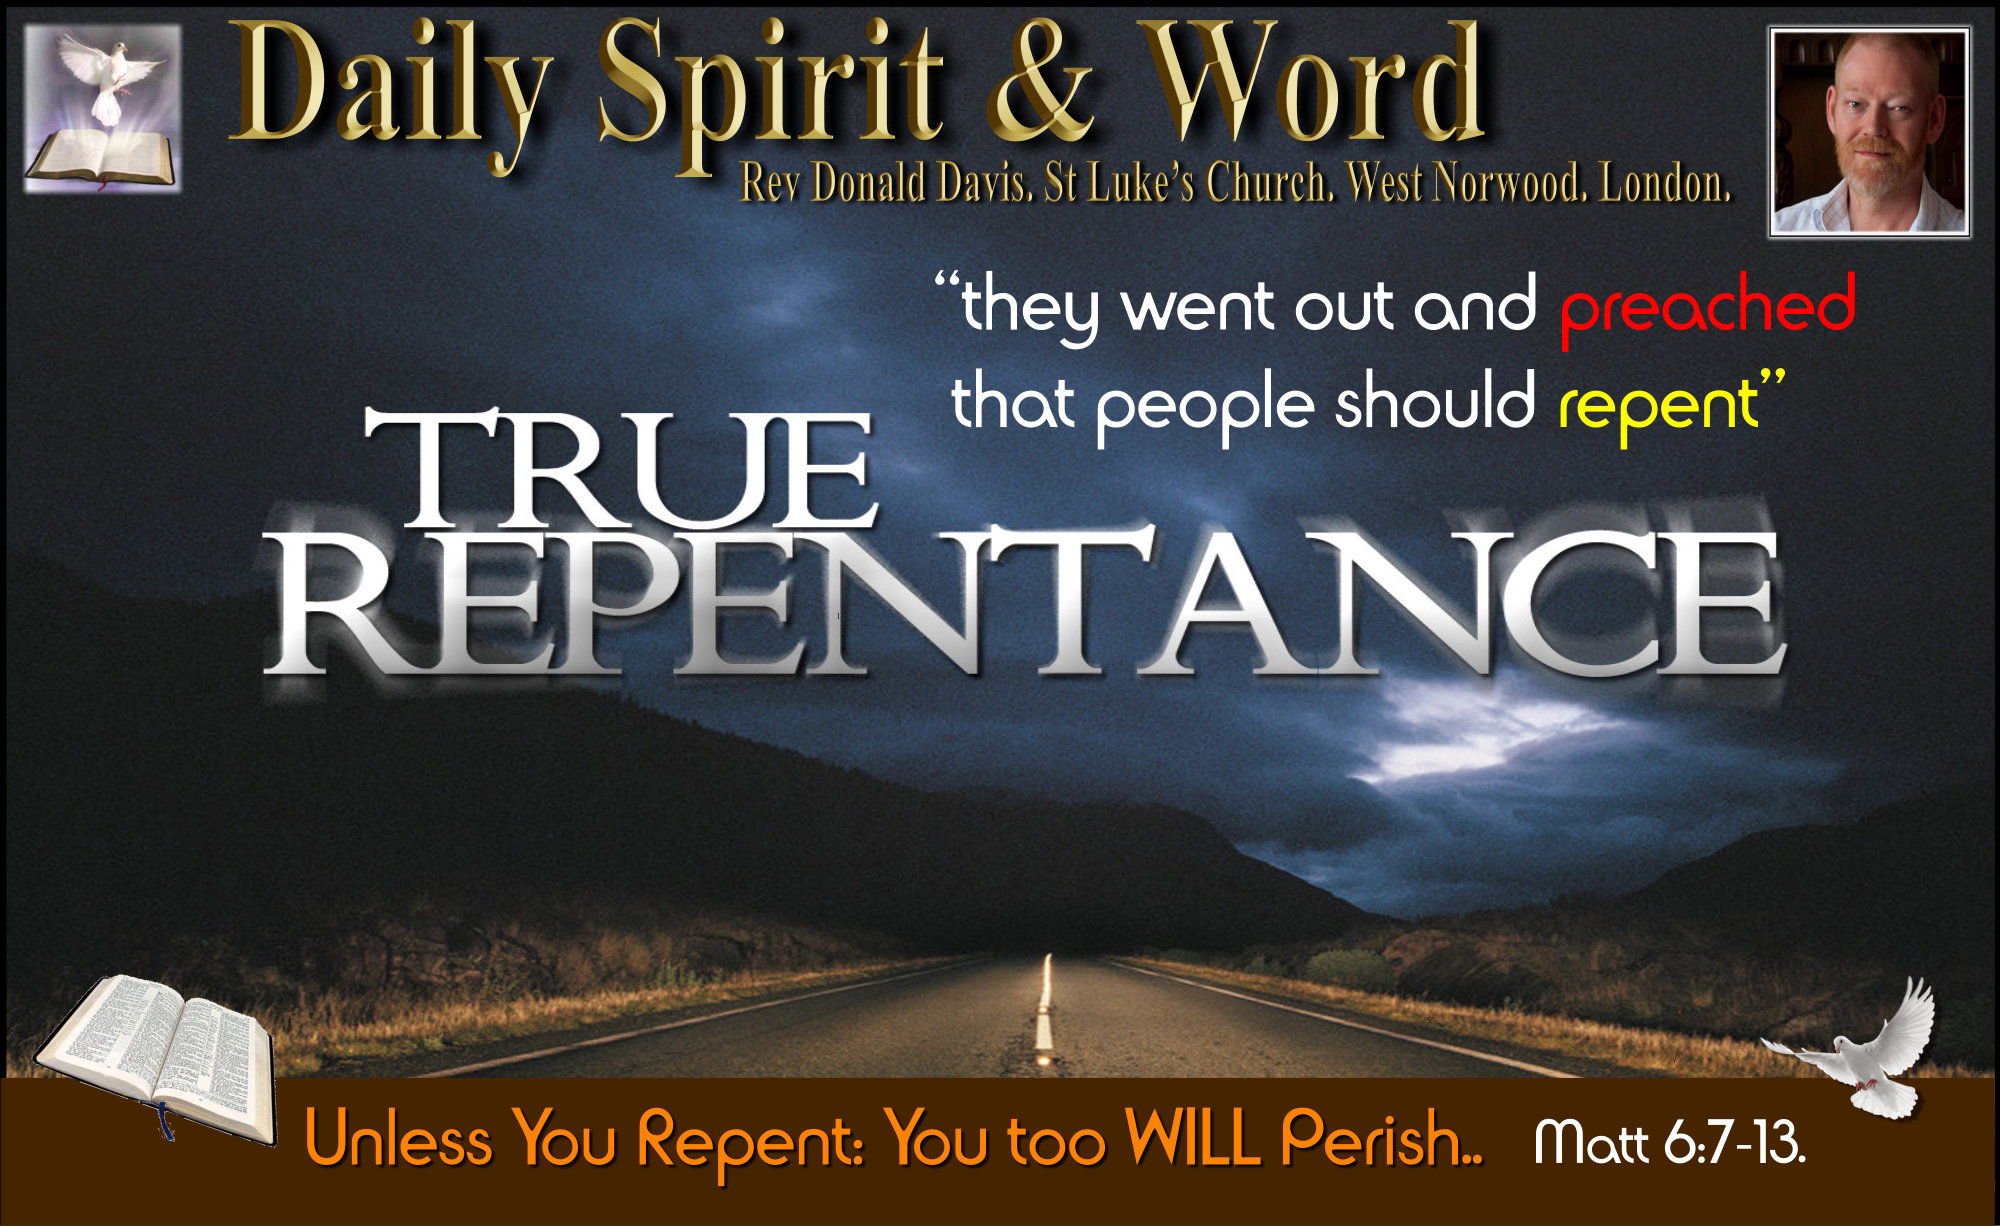 The ingredients of true repentance